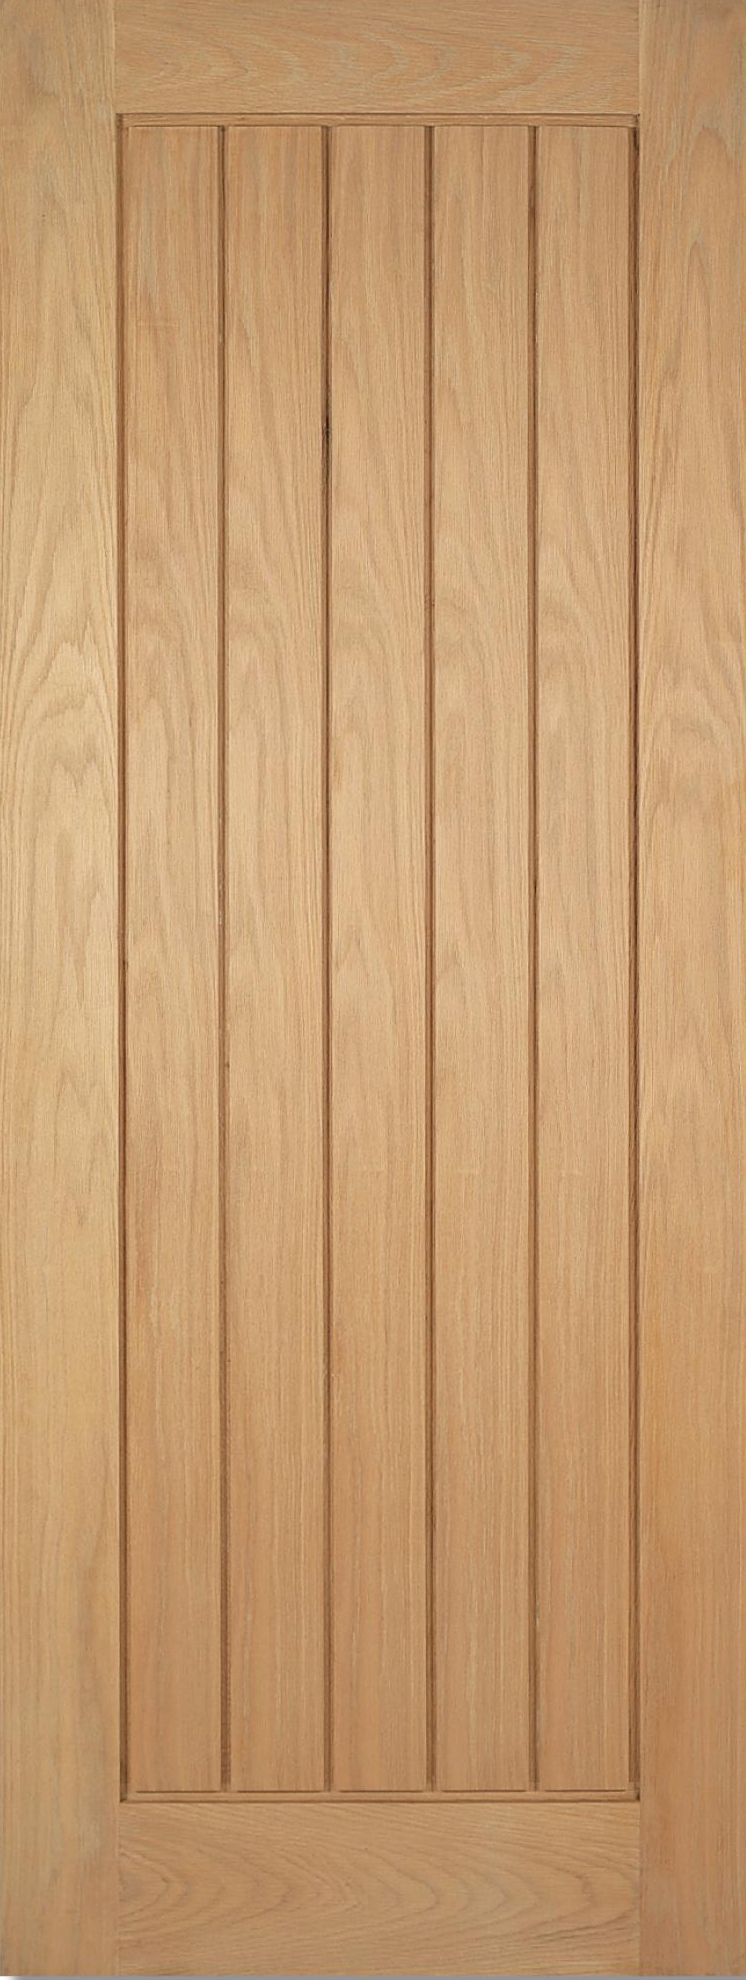 Mexicana oak internal door mexicano oak prefinished for Internal wooden doors